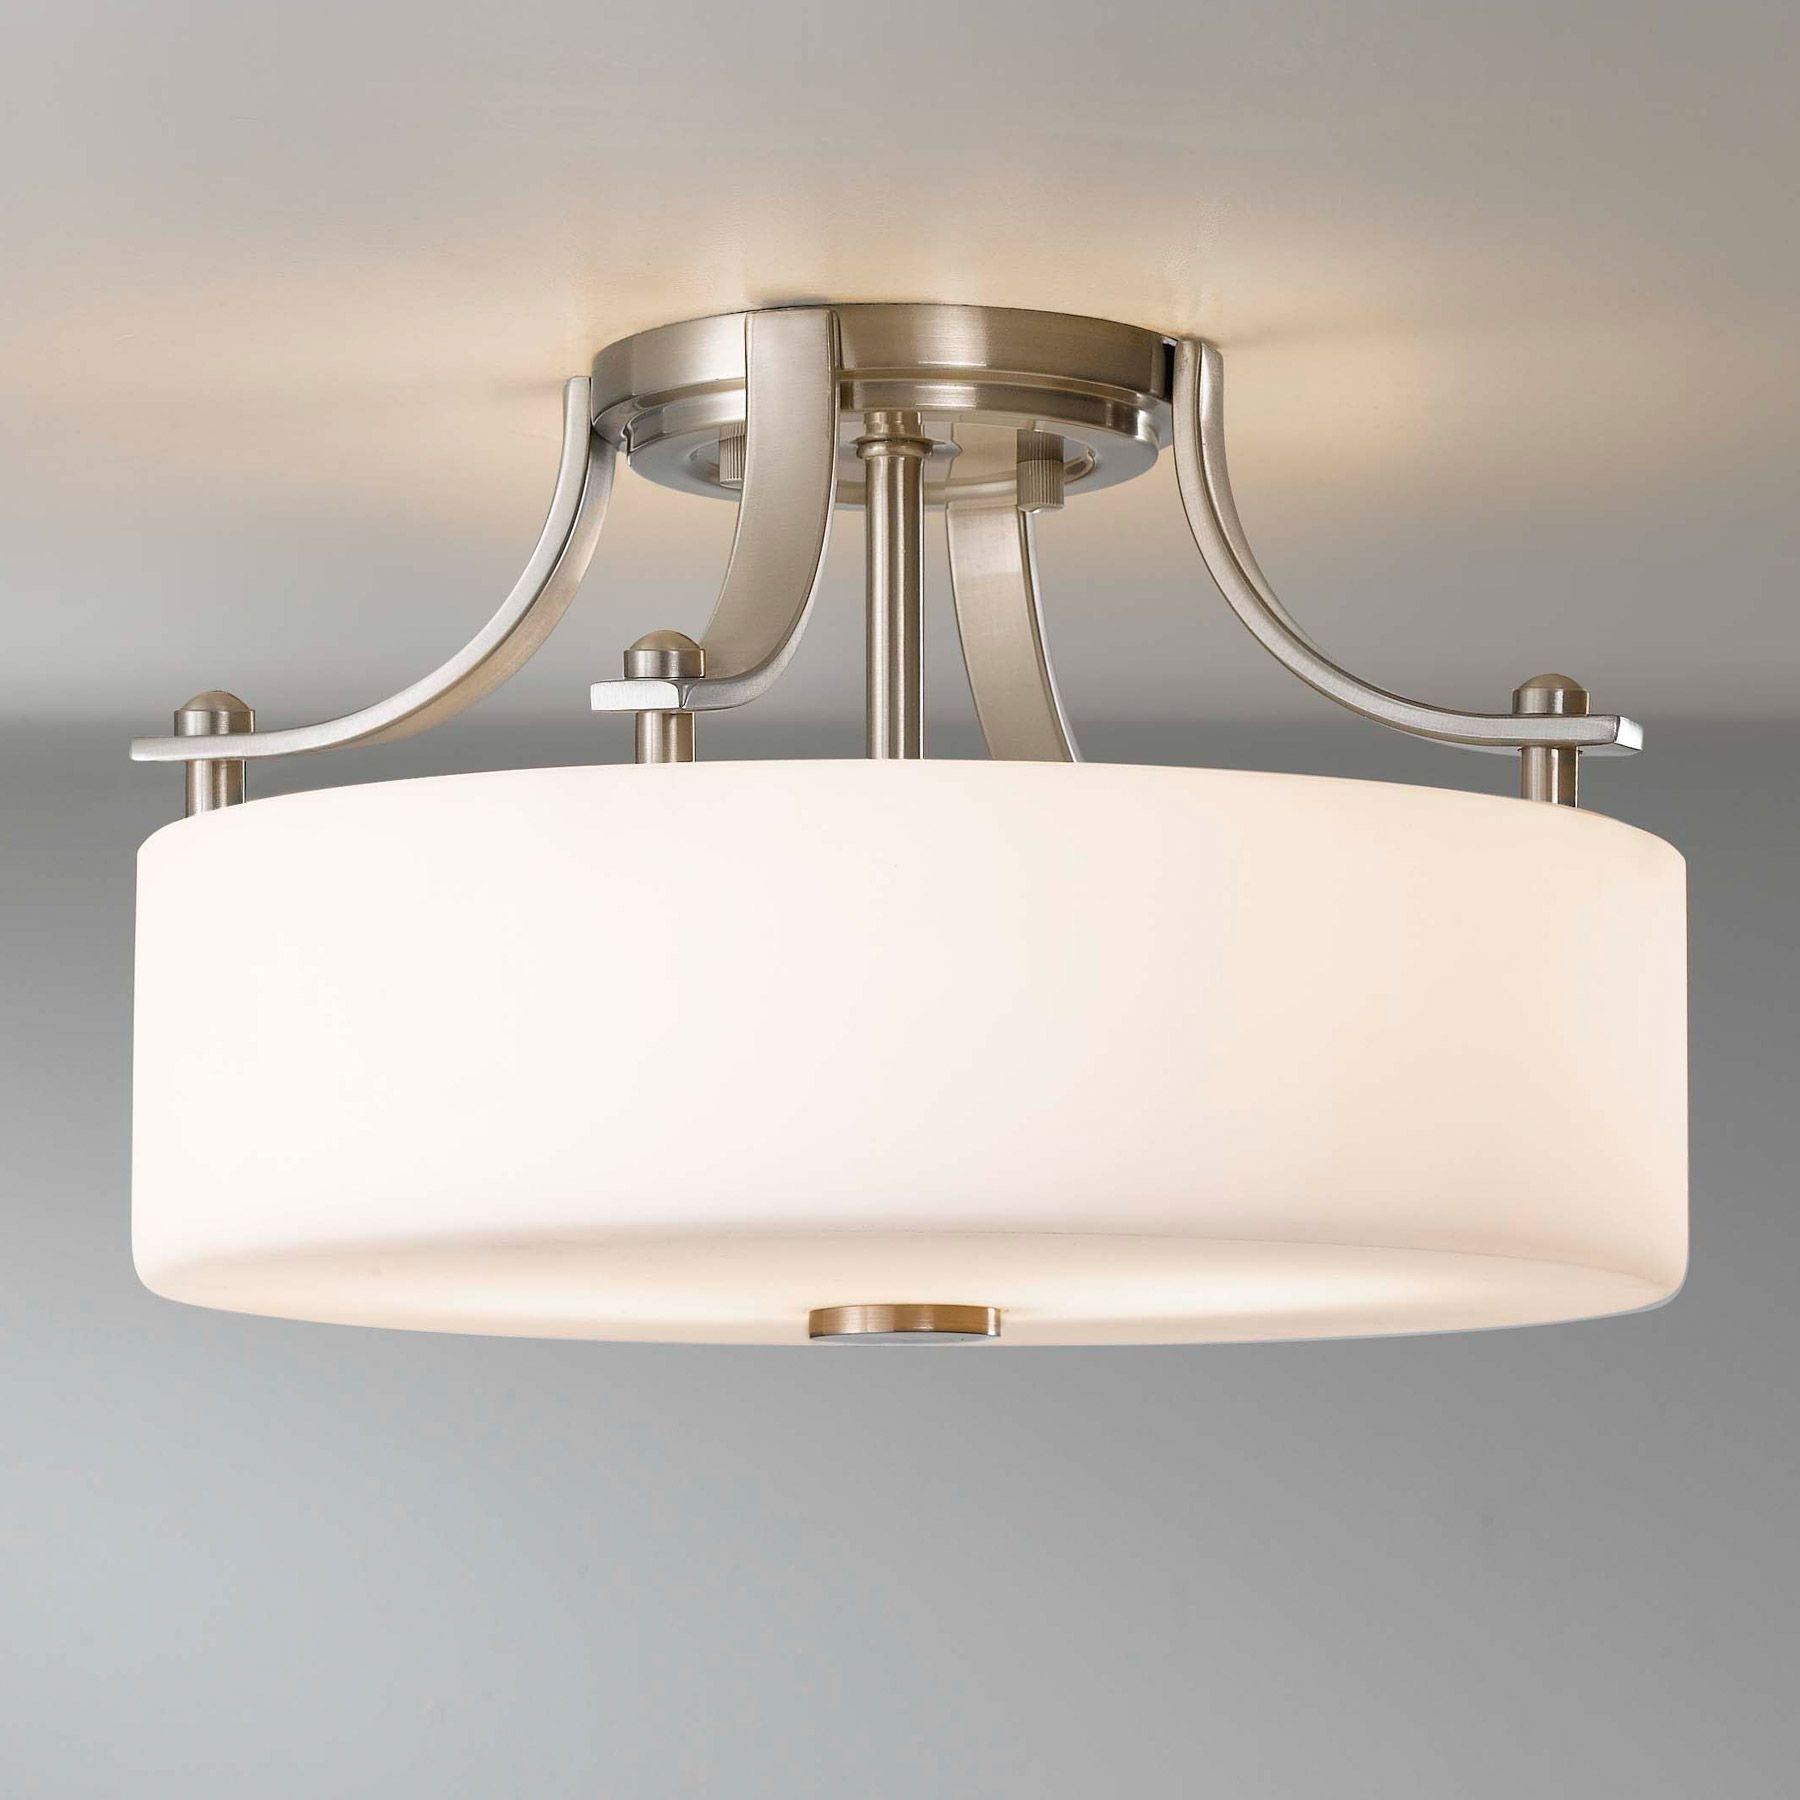 ceiling lights for kitchen Ceiling lighting